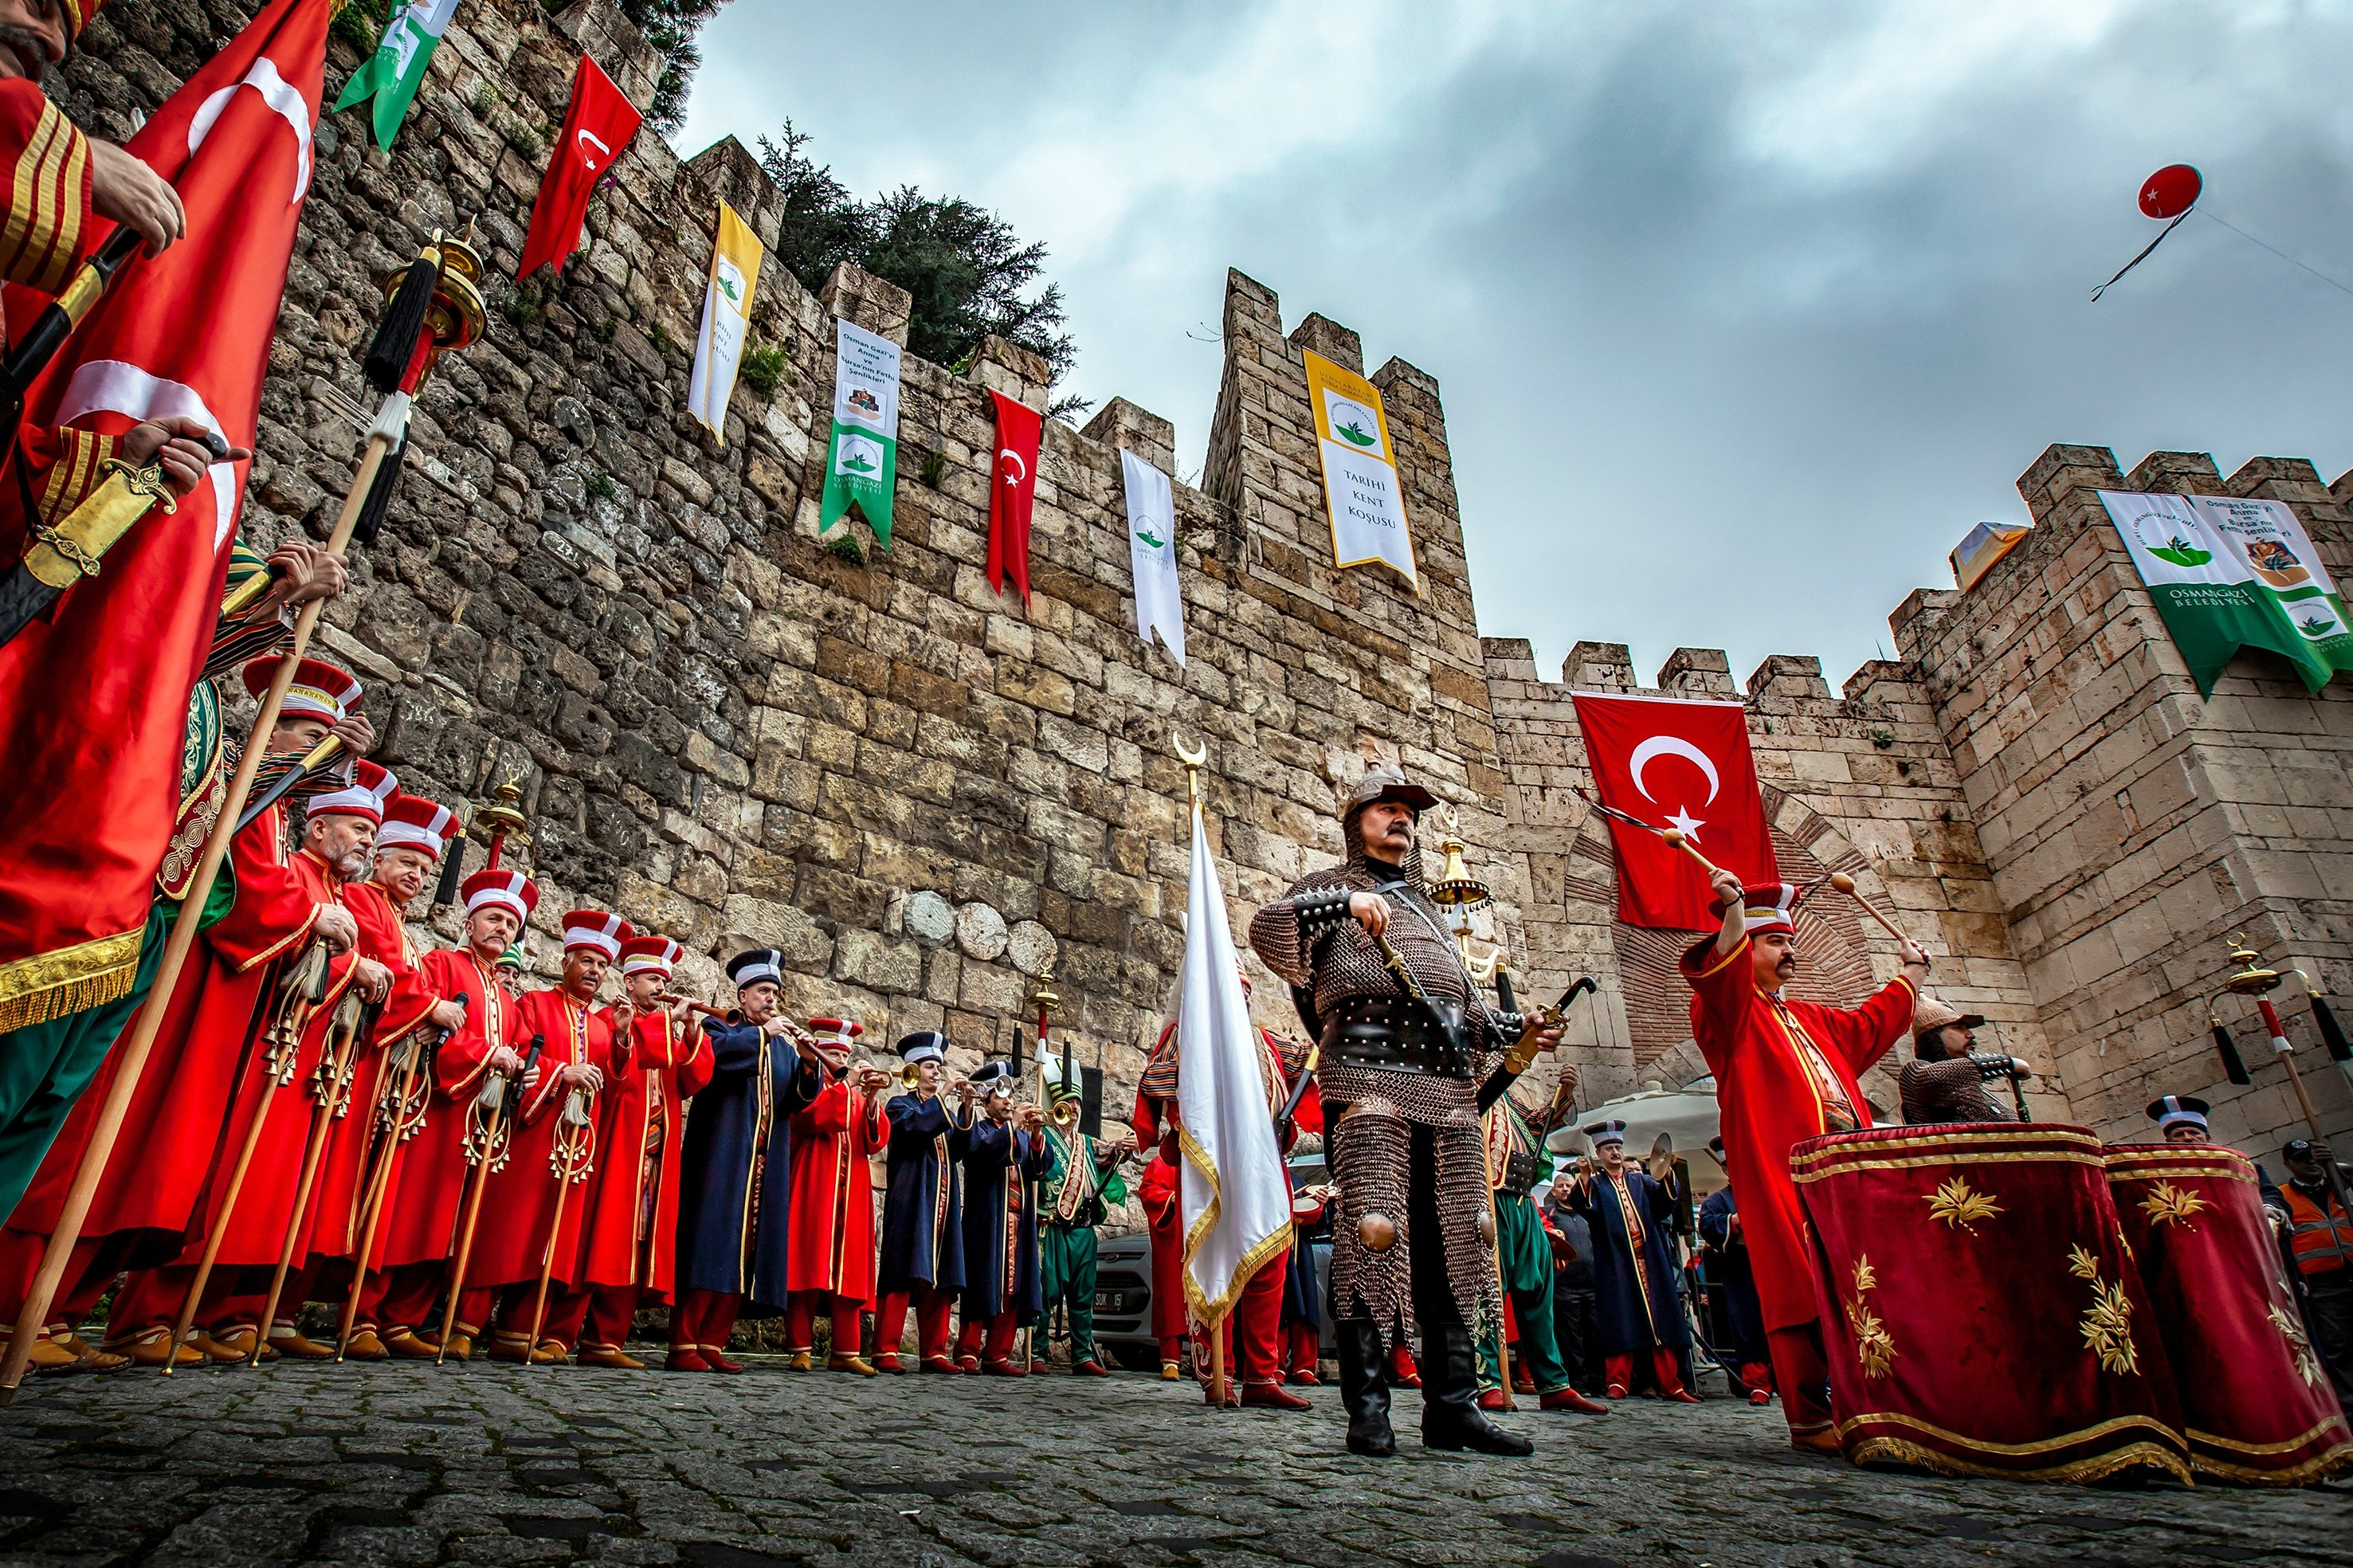 A Mehter band is seen in their traditional clothes in Bursa, northwestern Turkey, April 14, 2019. (Shutterstock Photo)